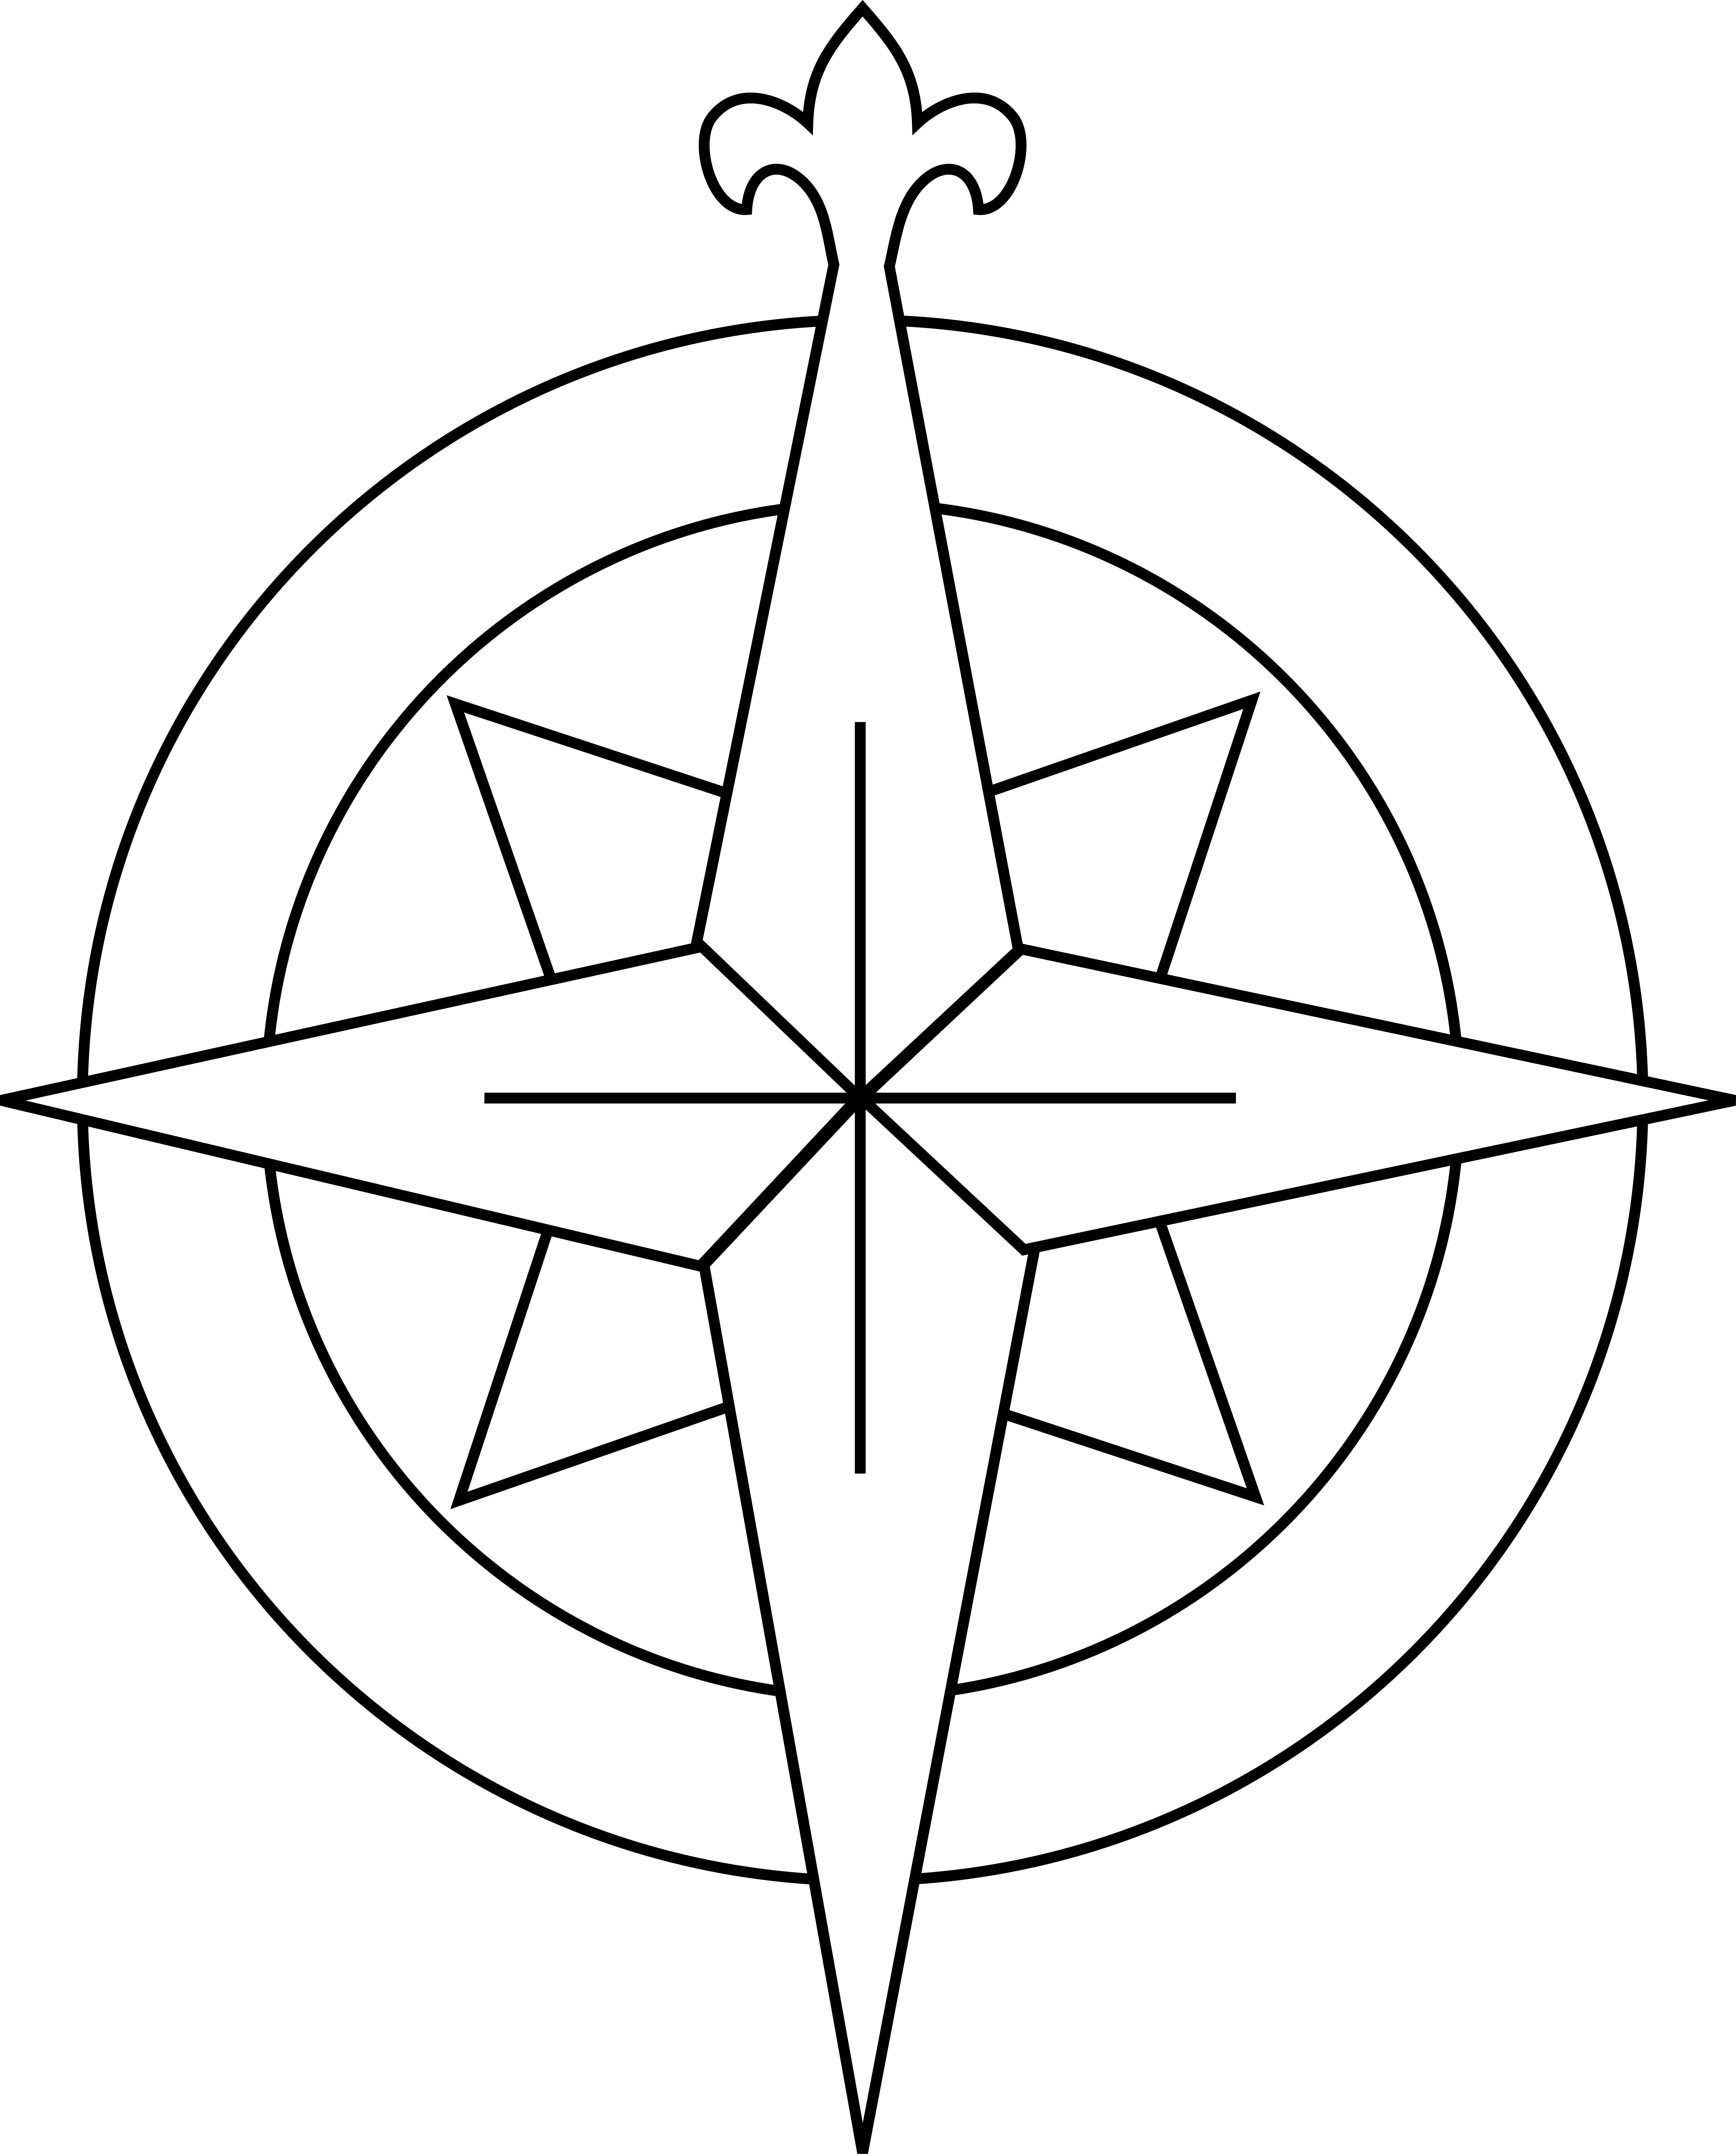 4683x5810 Trend Compass Rose Coloring Page 45